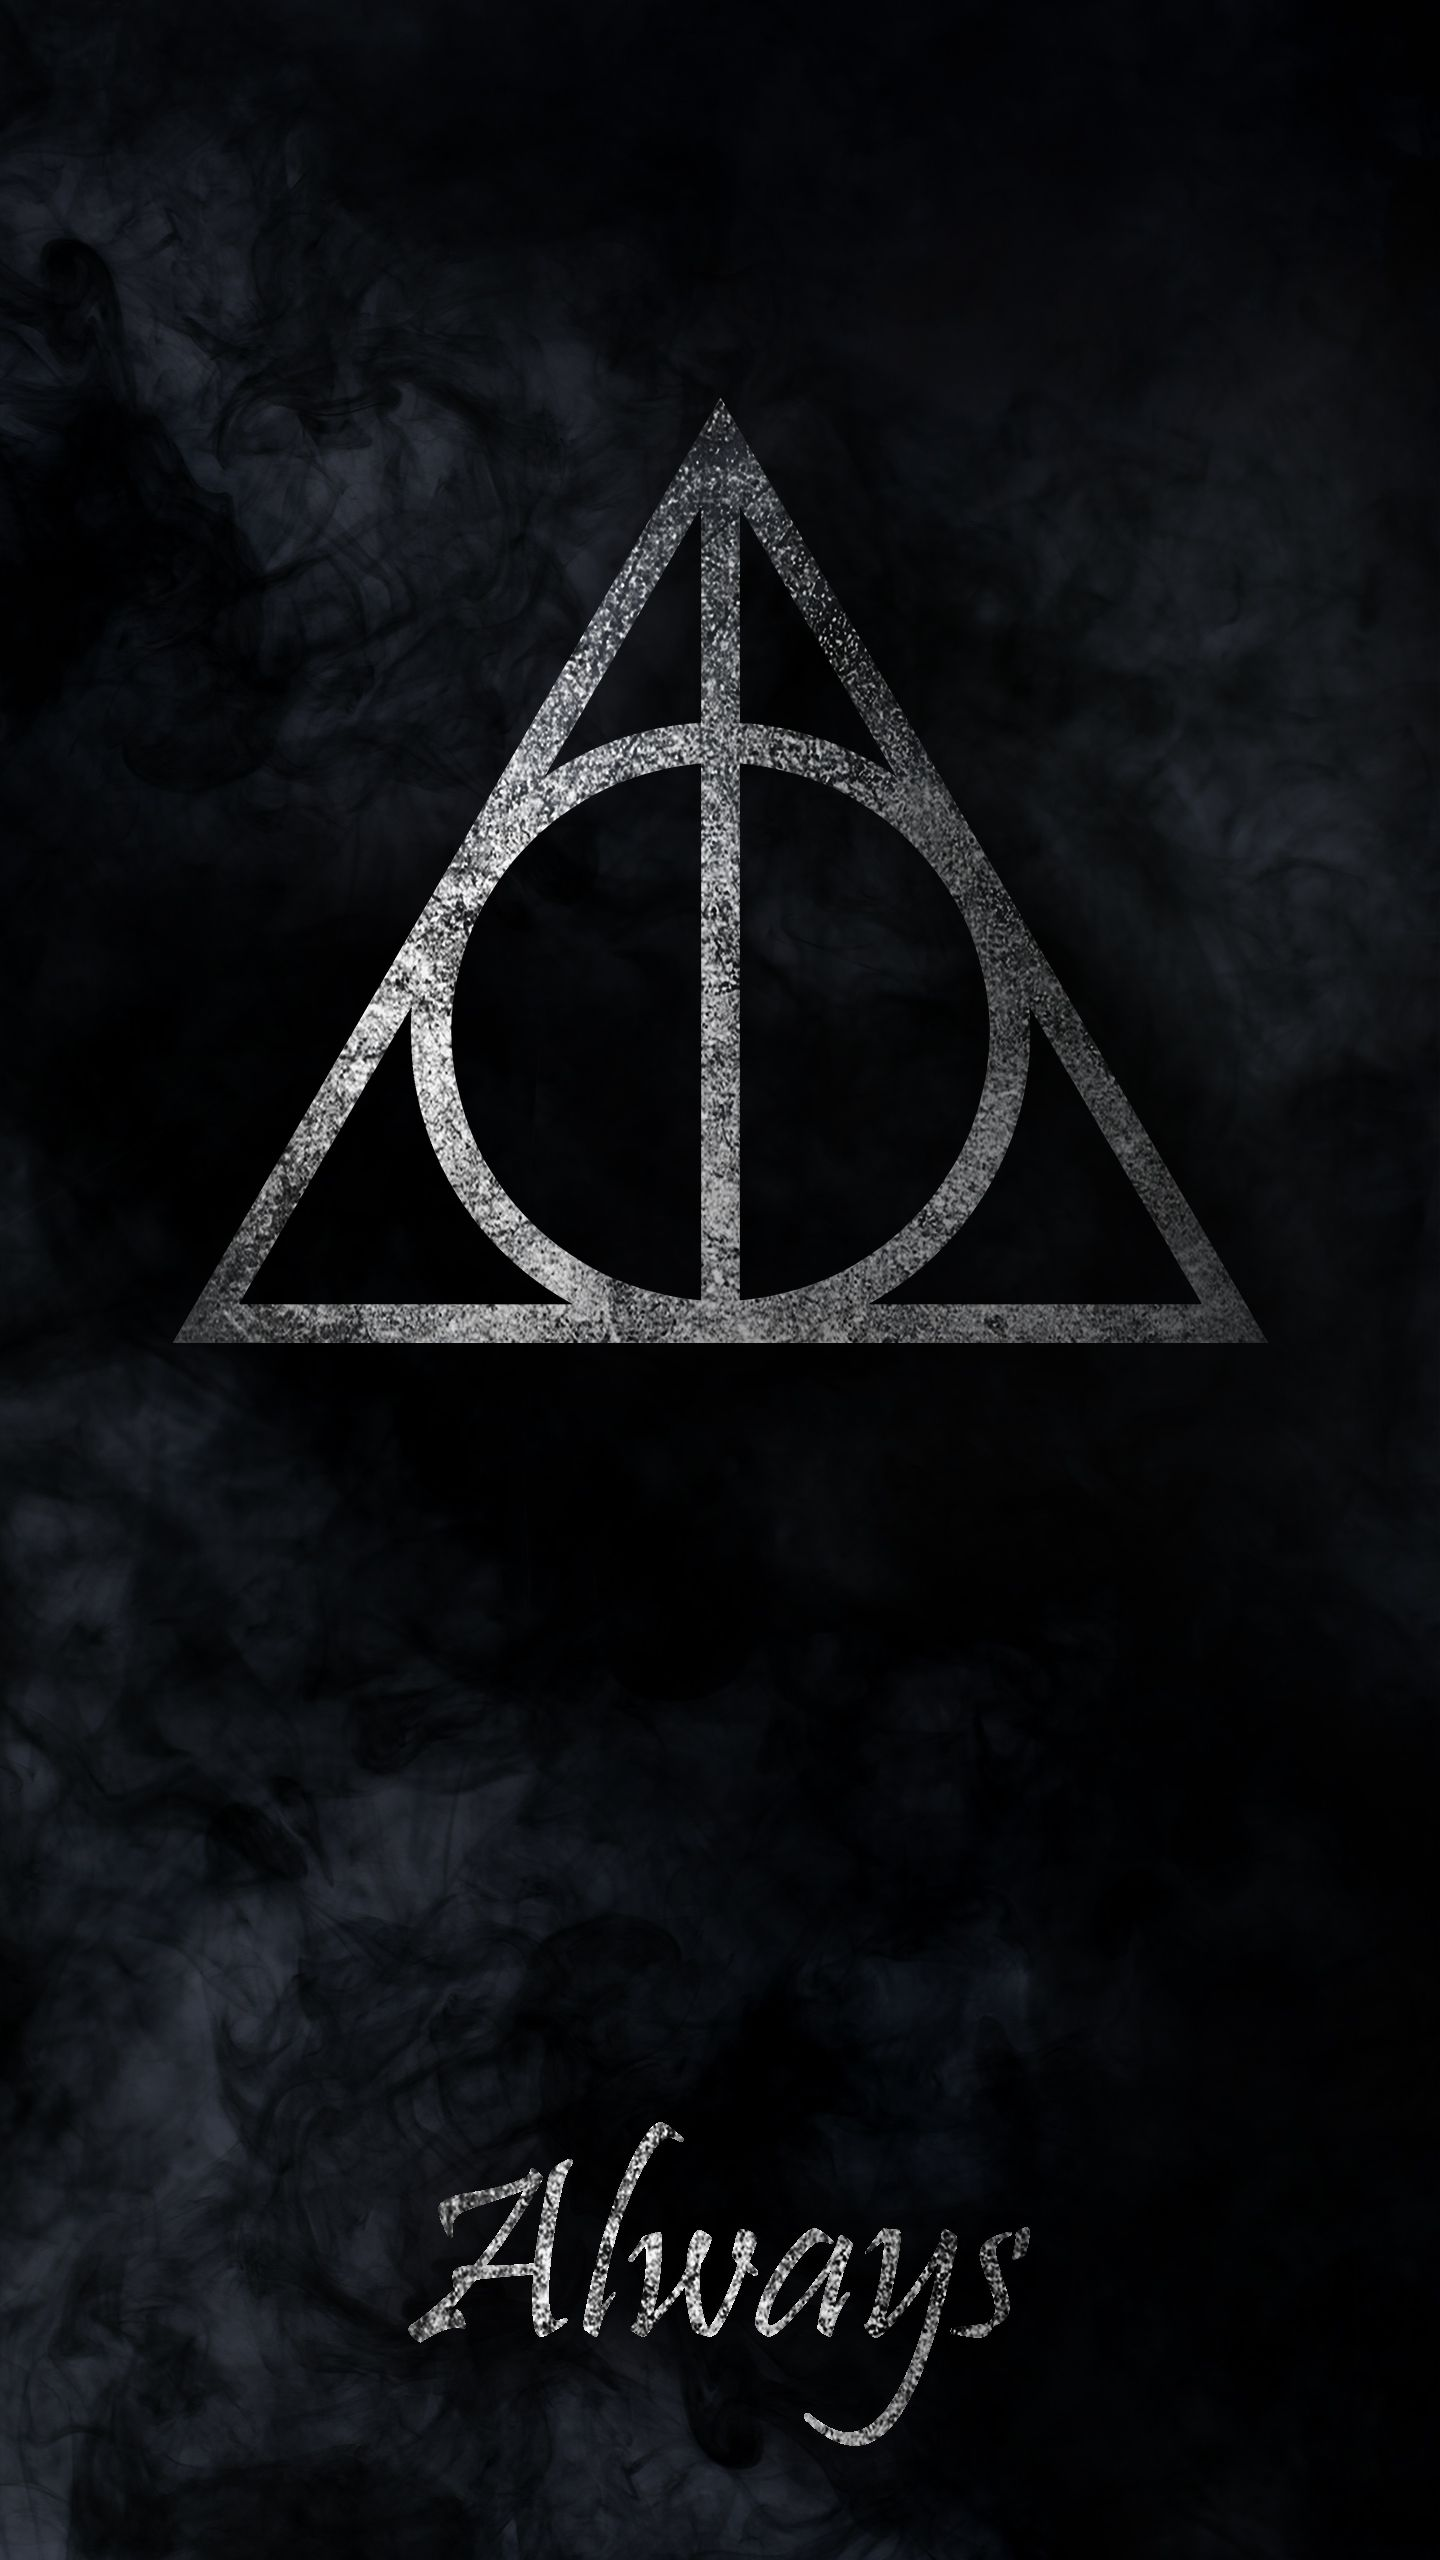 Wallpapers Harry Potter Harry Potter And The Deathly Hallows Phone Wallpaper Wallpapers